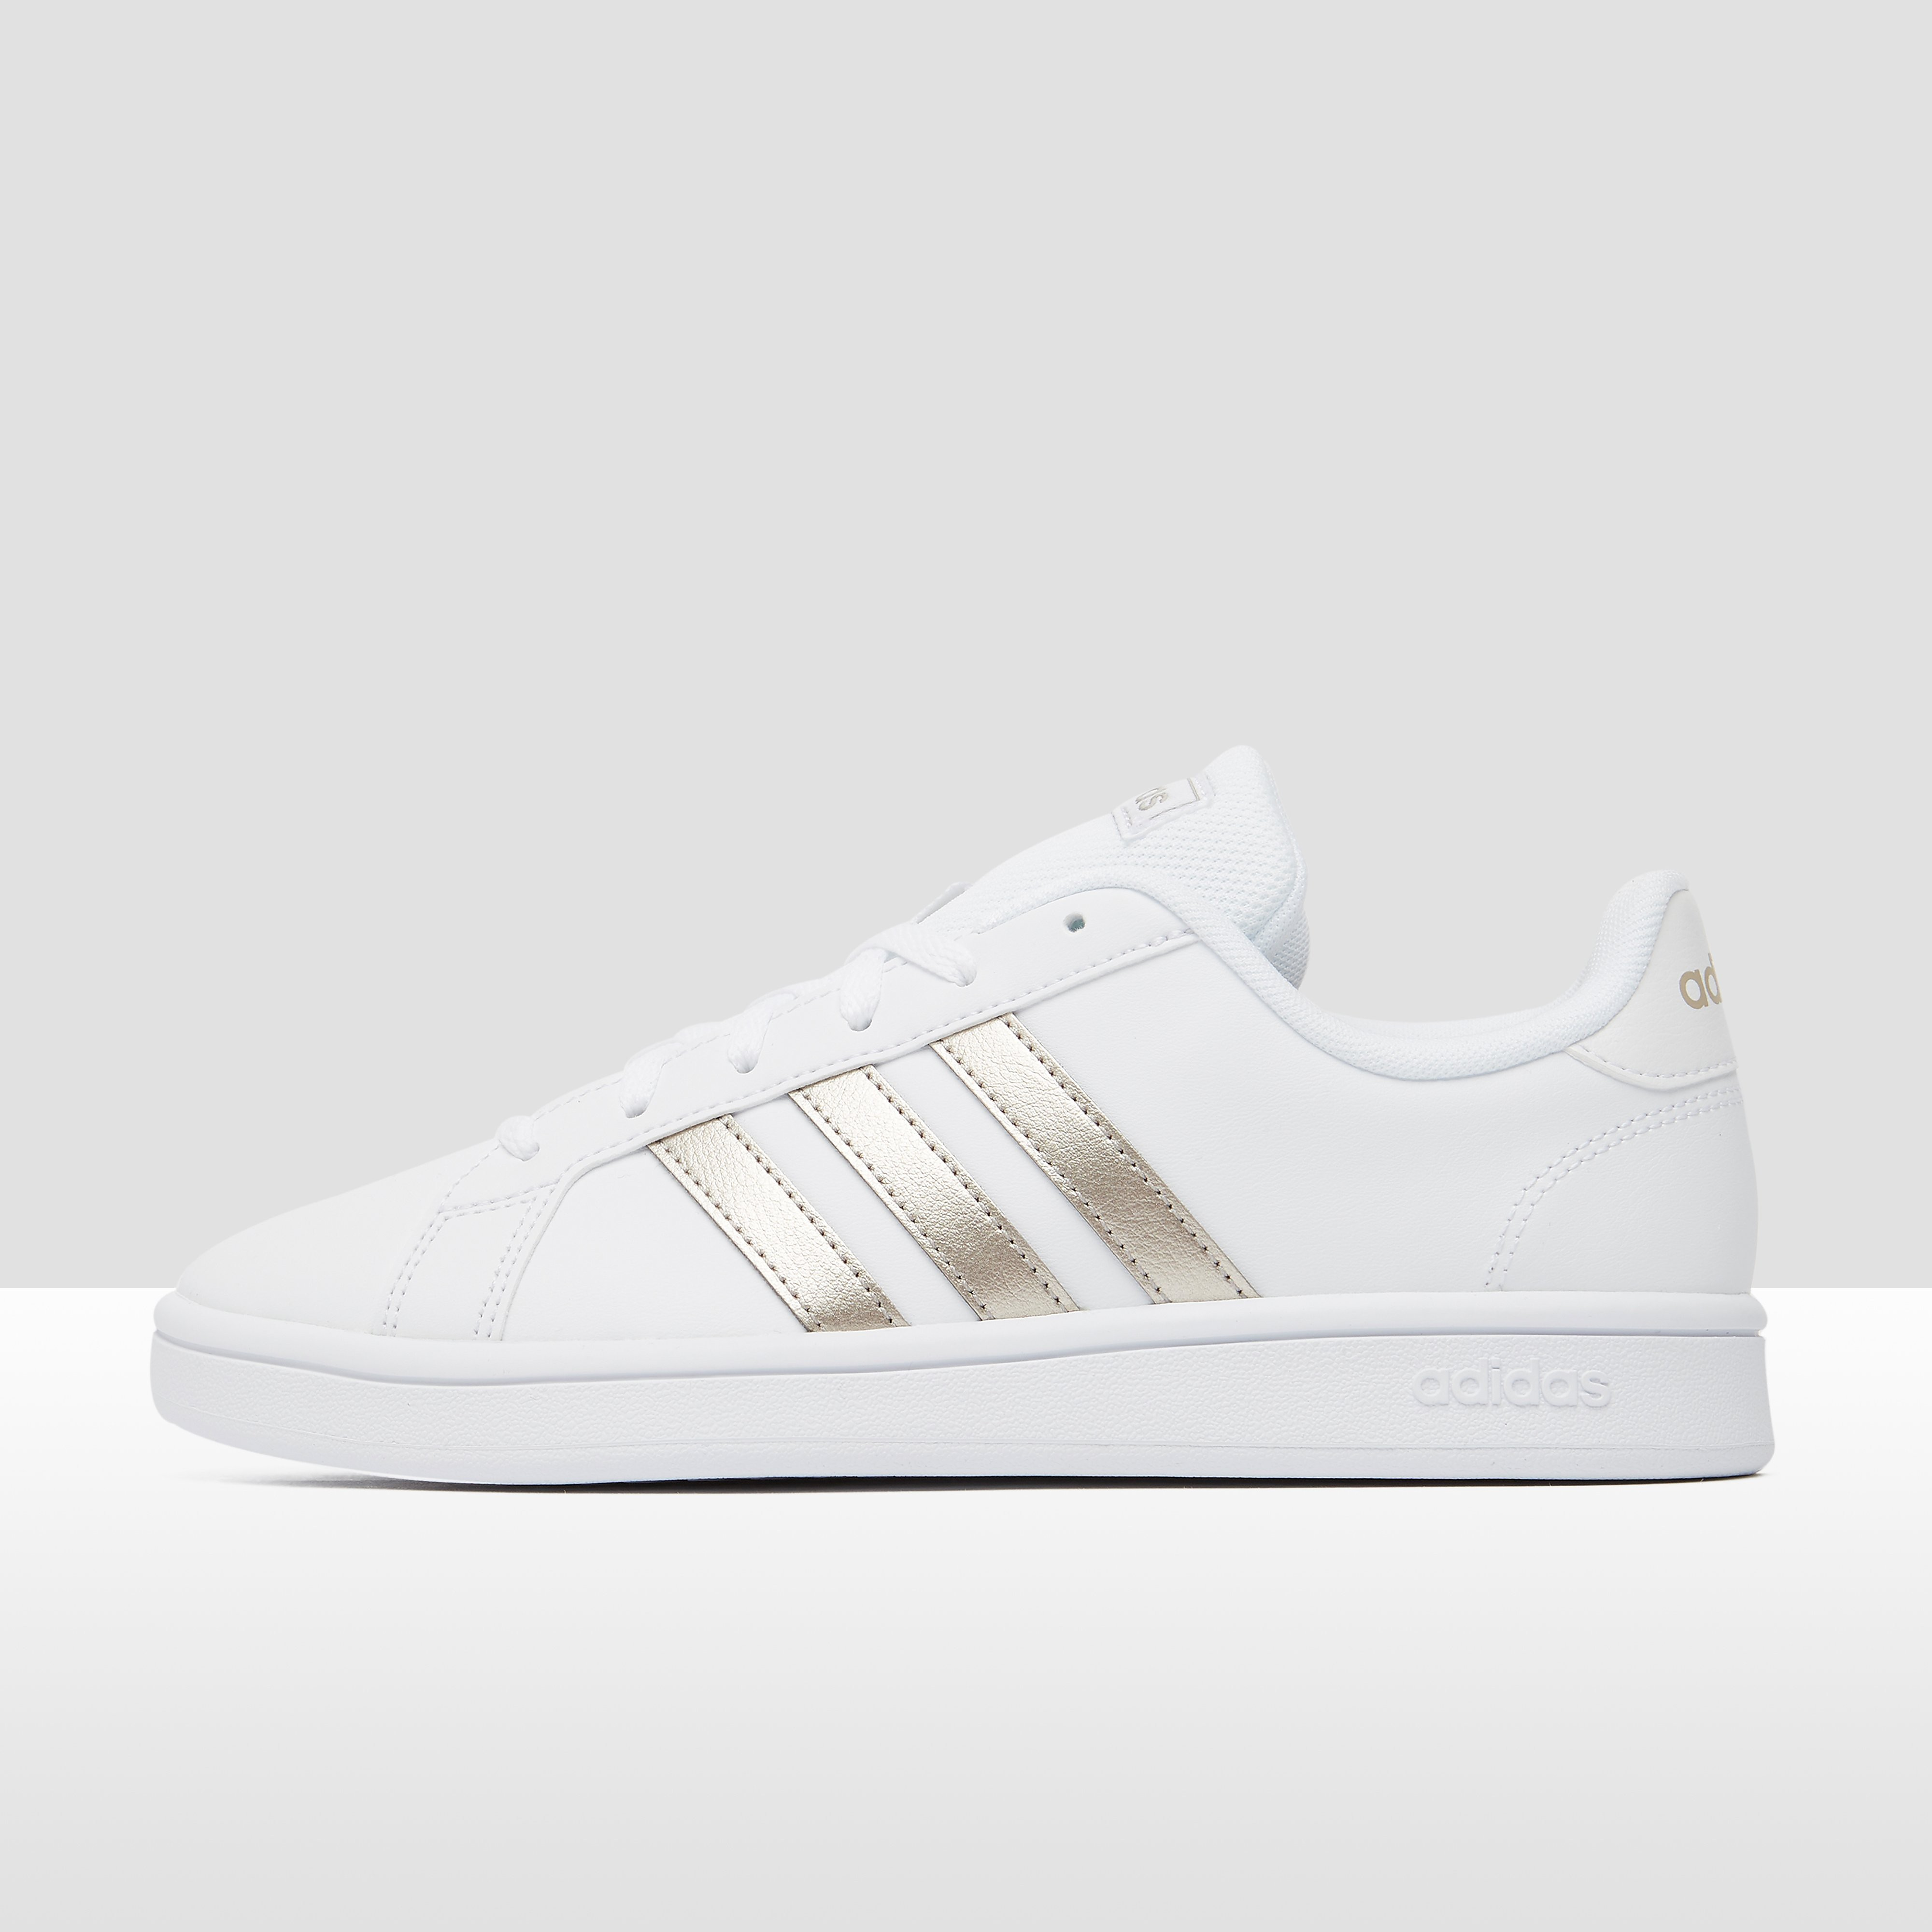 adidas Grand court base sneakers wit/goud dames Dames